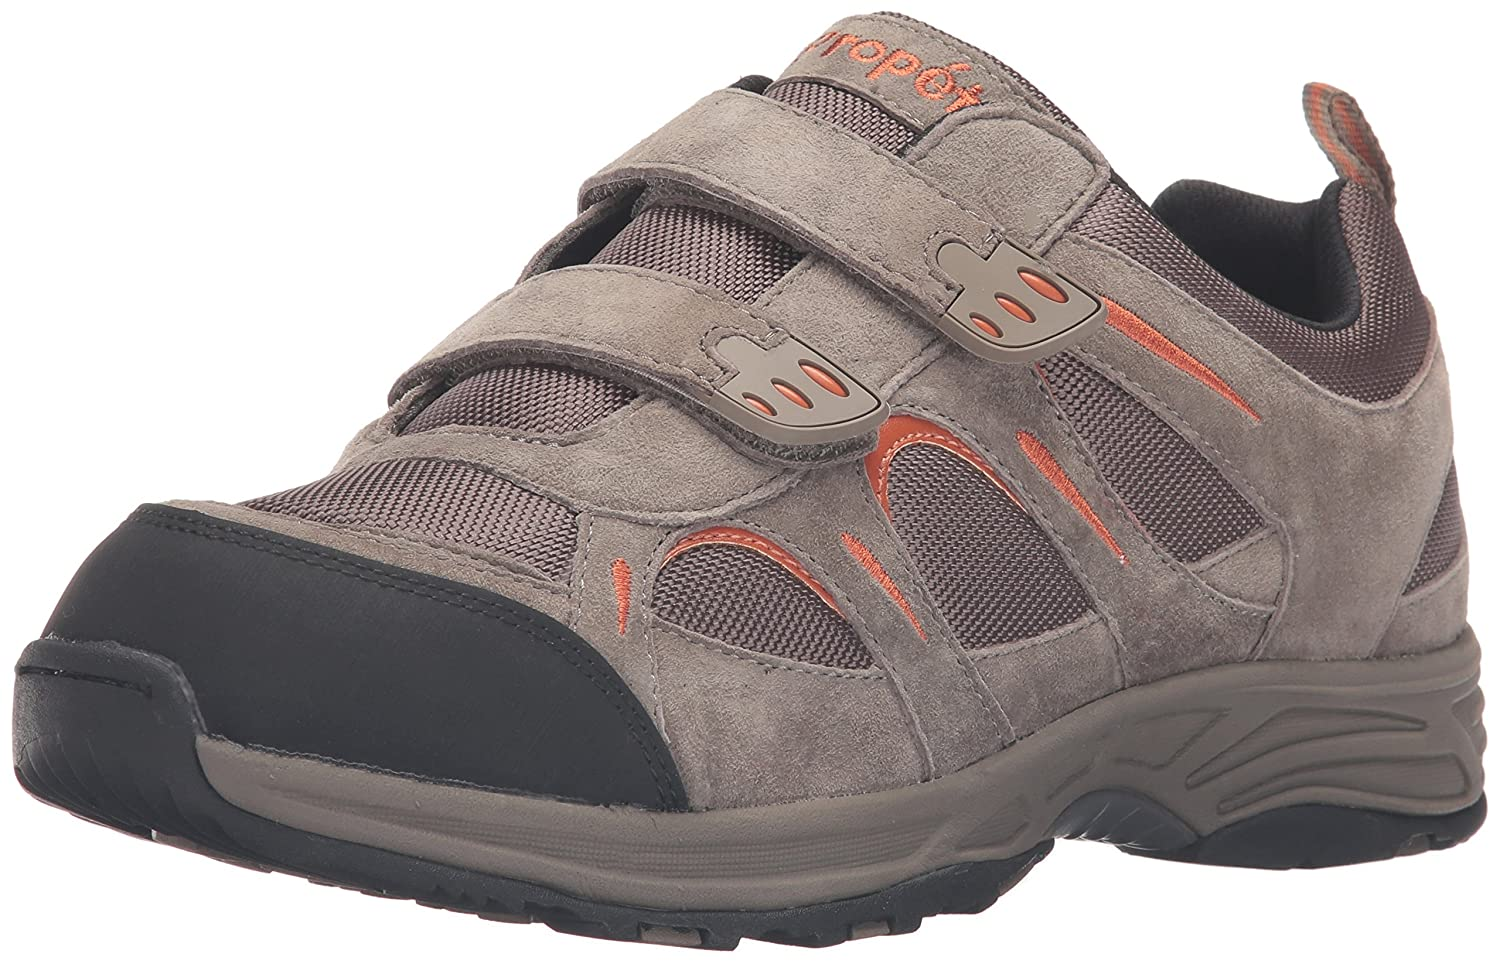 Propet Men's Connelly Strap Walking Shoe 10 3E US|Gunsmoke/Orange